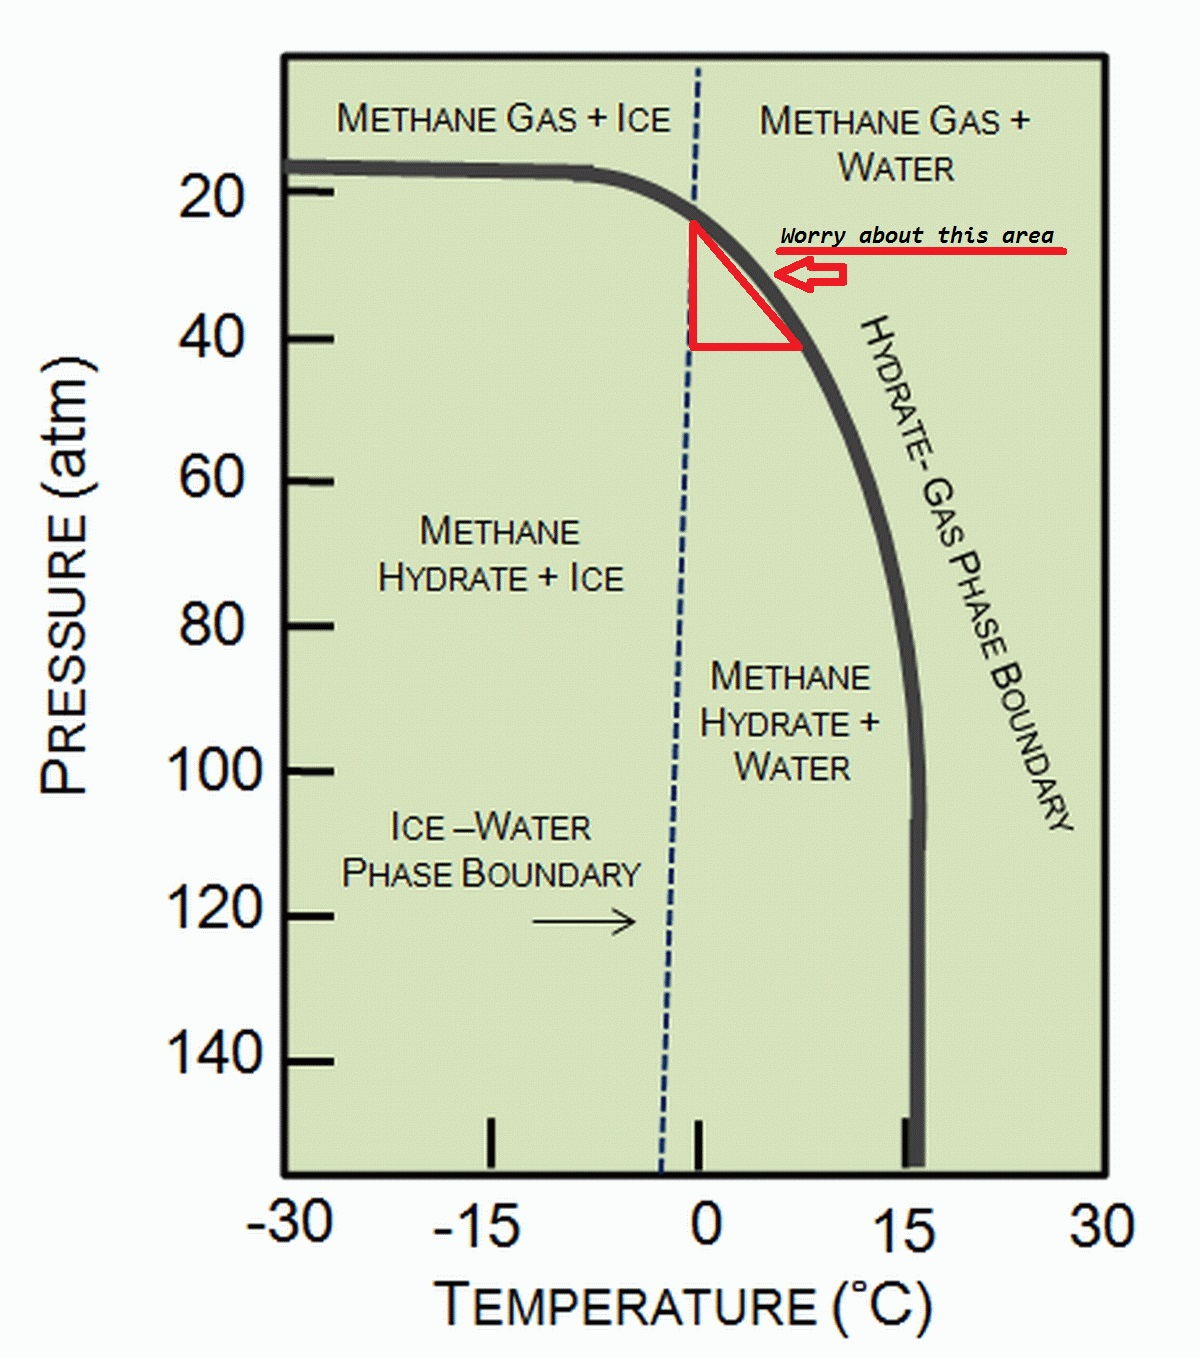 pvt phase diagram 2 gang way dimmer wiring 21st century social critic methane information and